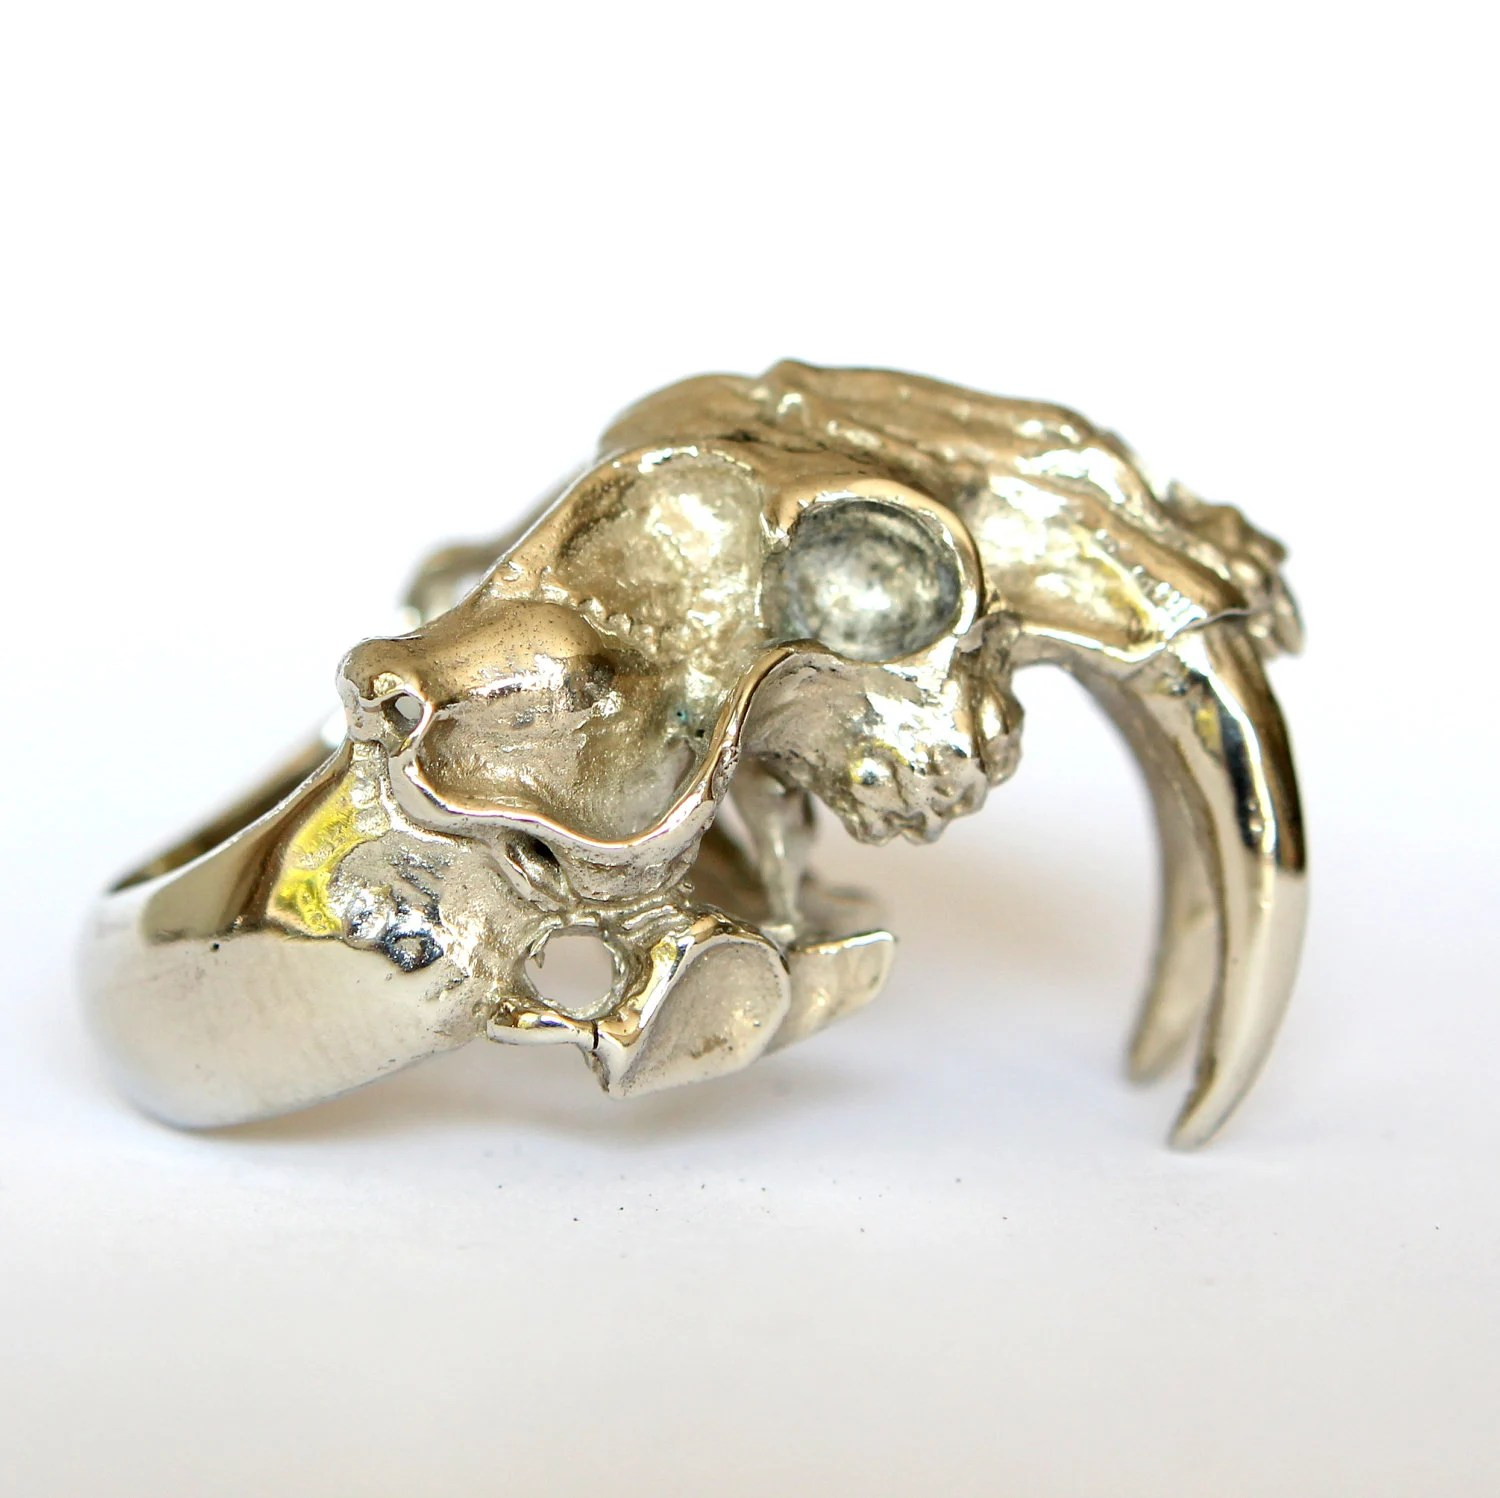 Saber Tooth Cat Skull Ring in Solid White Bronze Smilodon